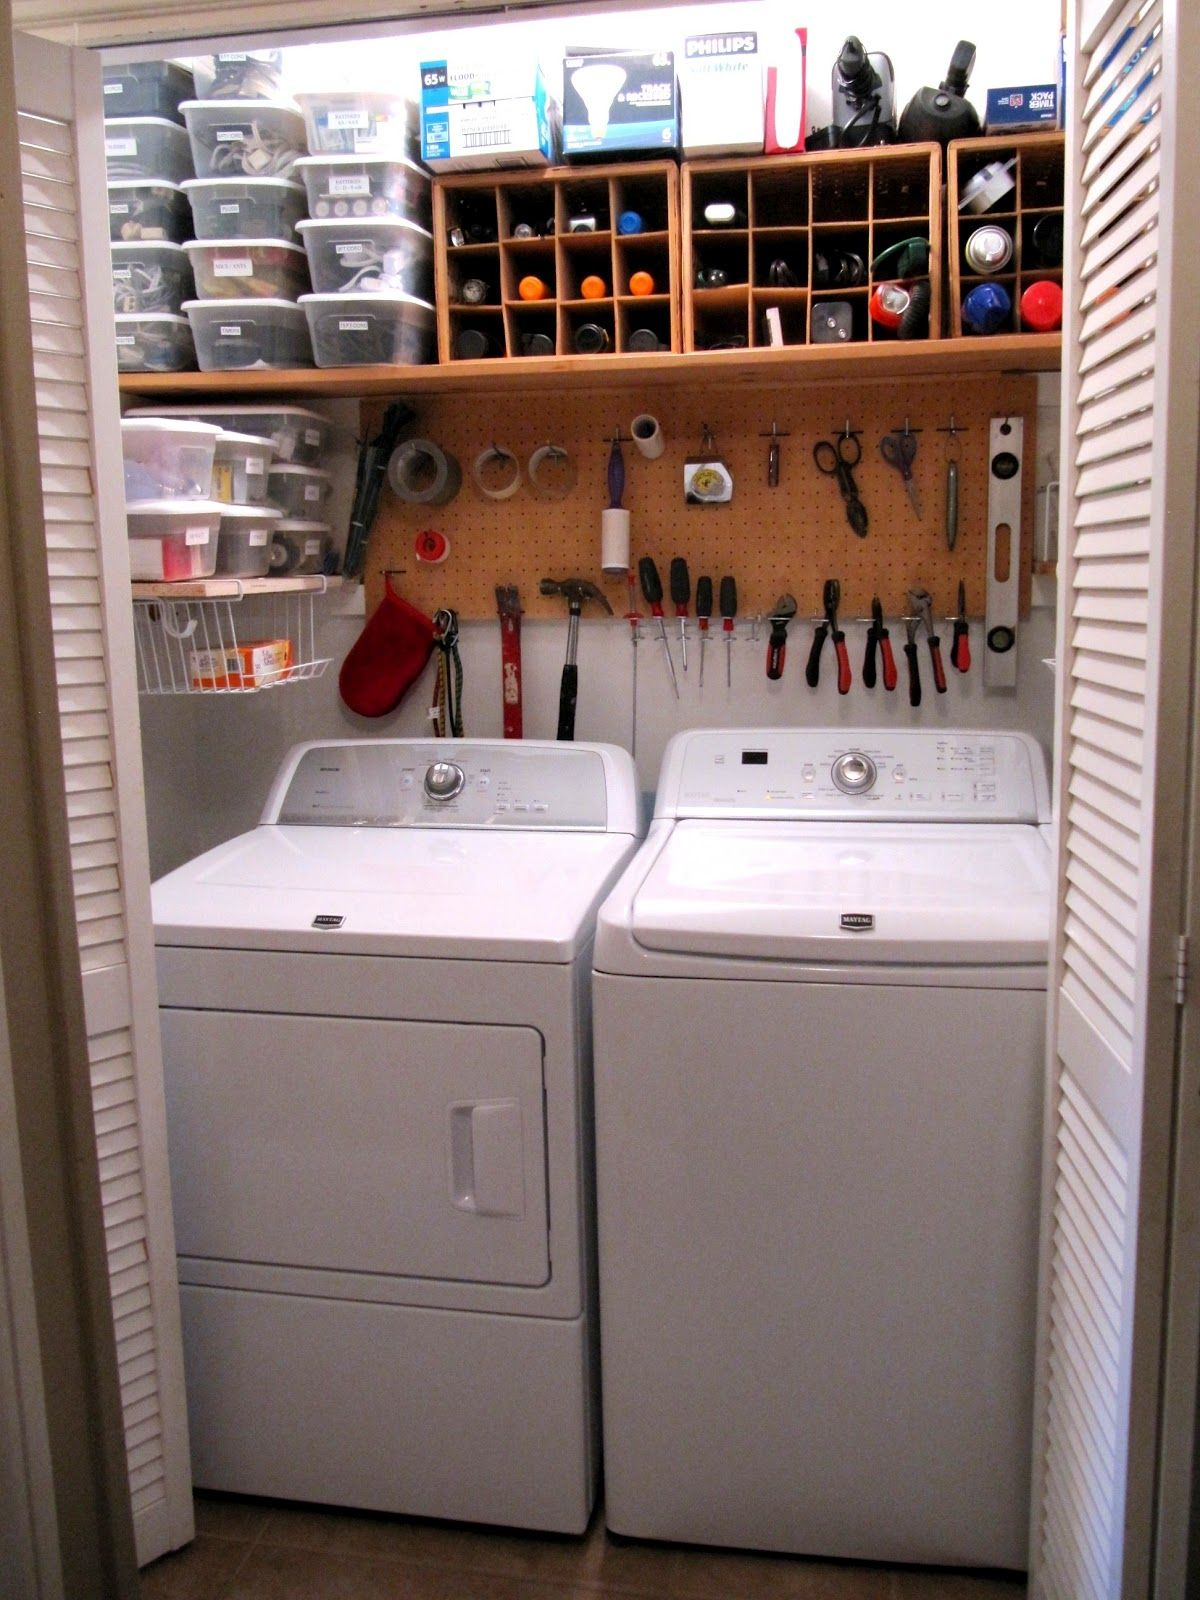 "LAUNDRY Room organization Top shelf ""Junk Drawer"" items The far left plastic boxes middle wooden wine bottle boxes"